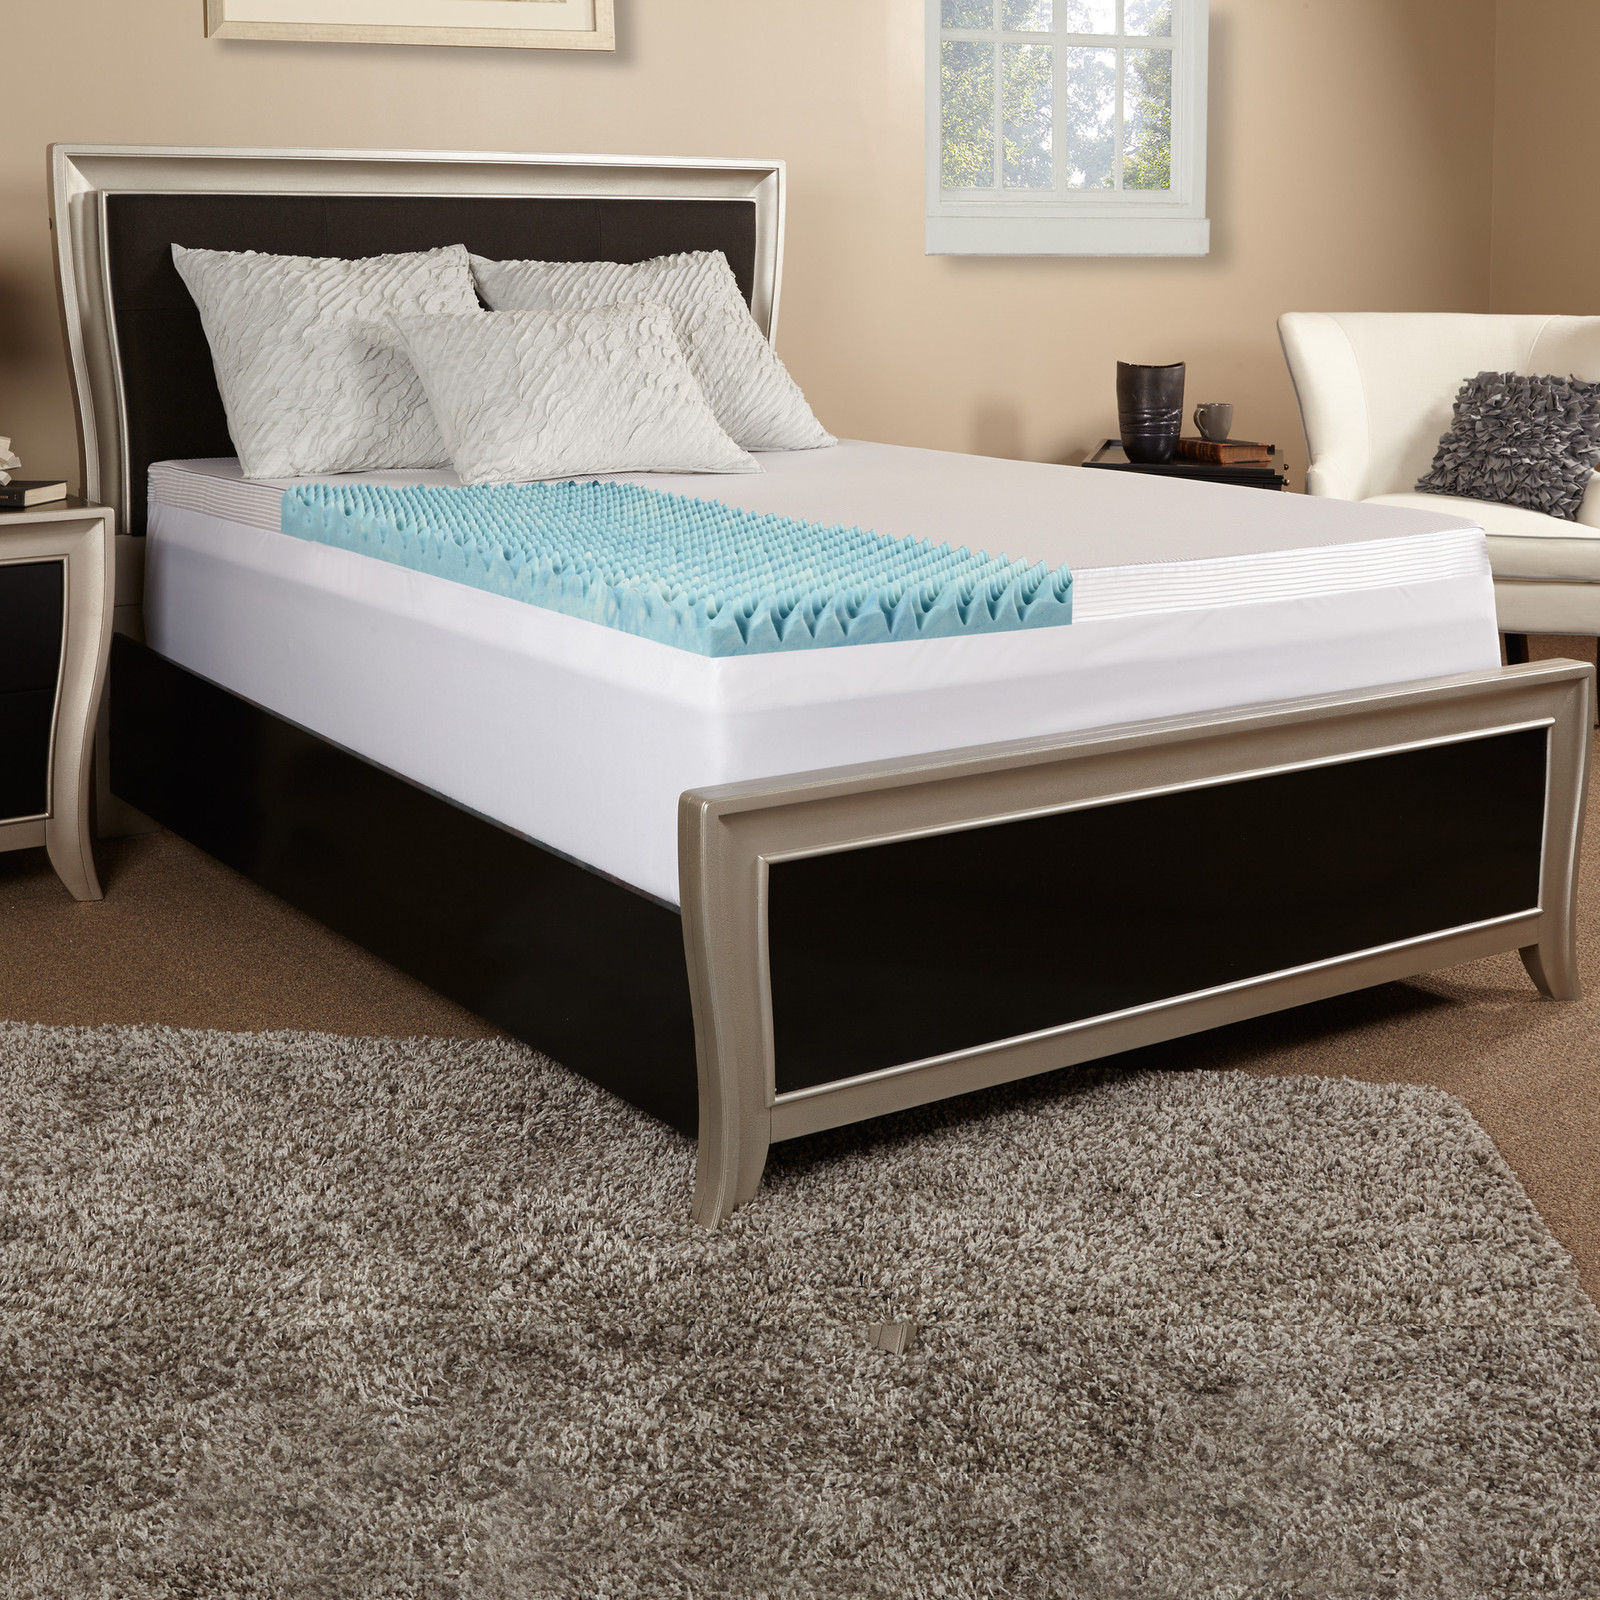 Awesome Full Size Mattress Topper